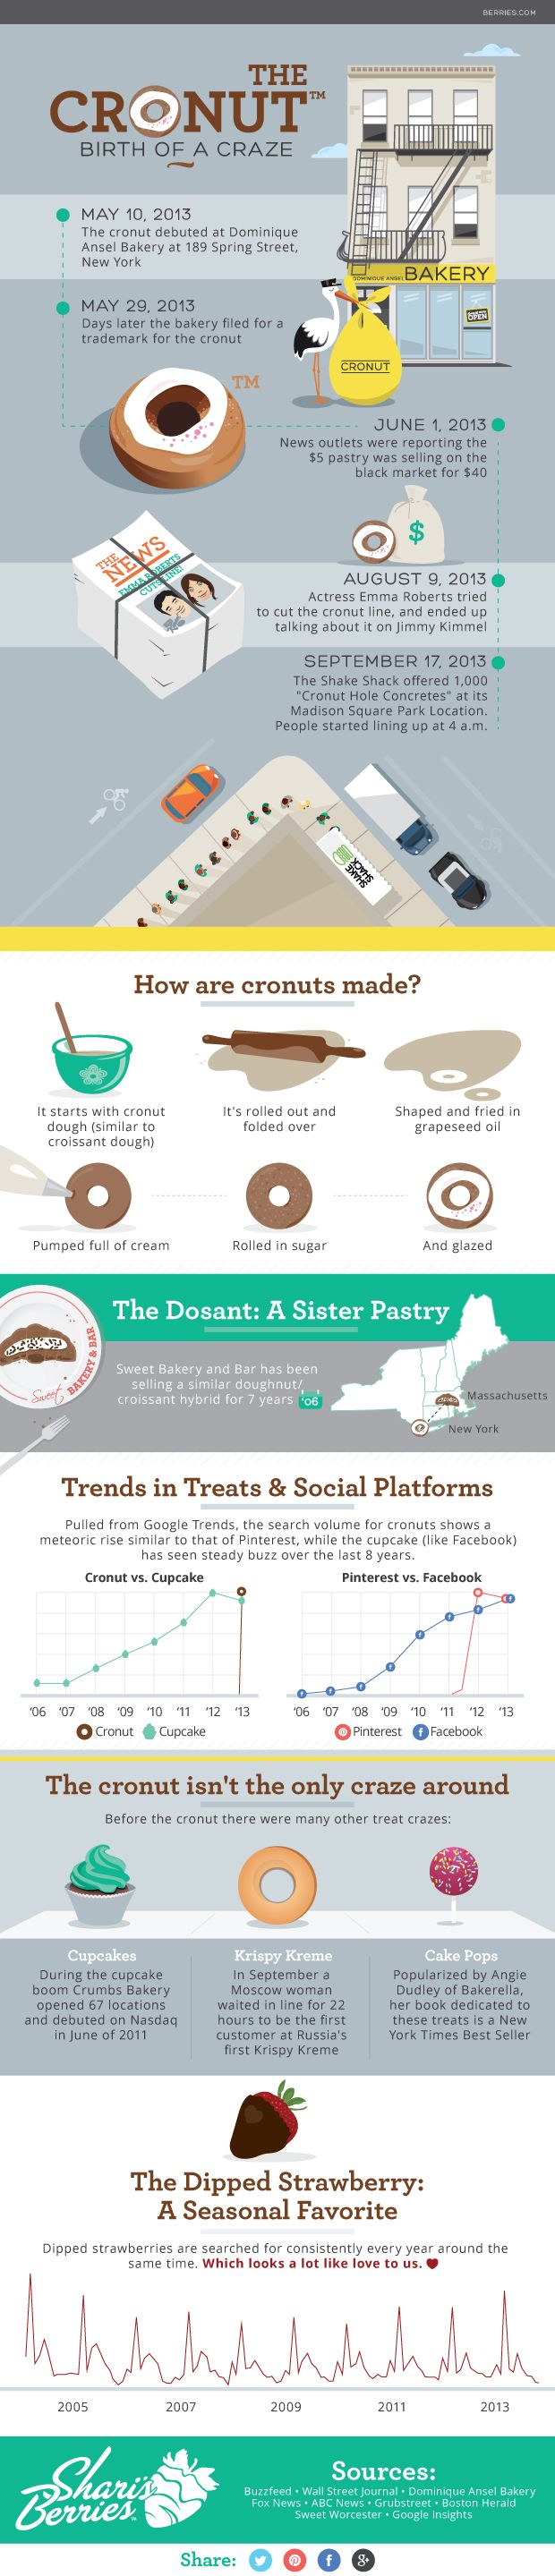 12 best infographics images on Pinterest | Info graphics ...